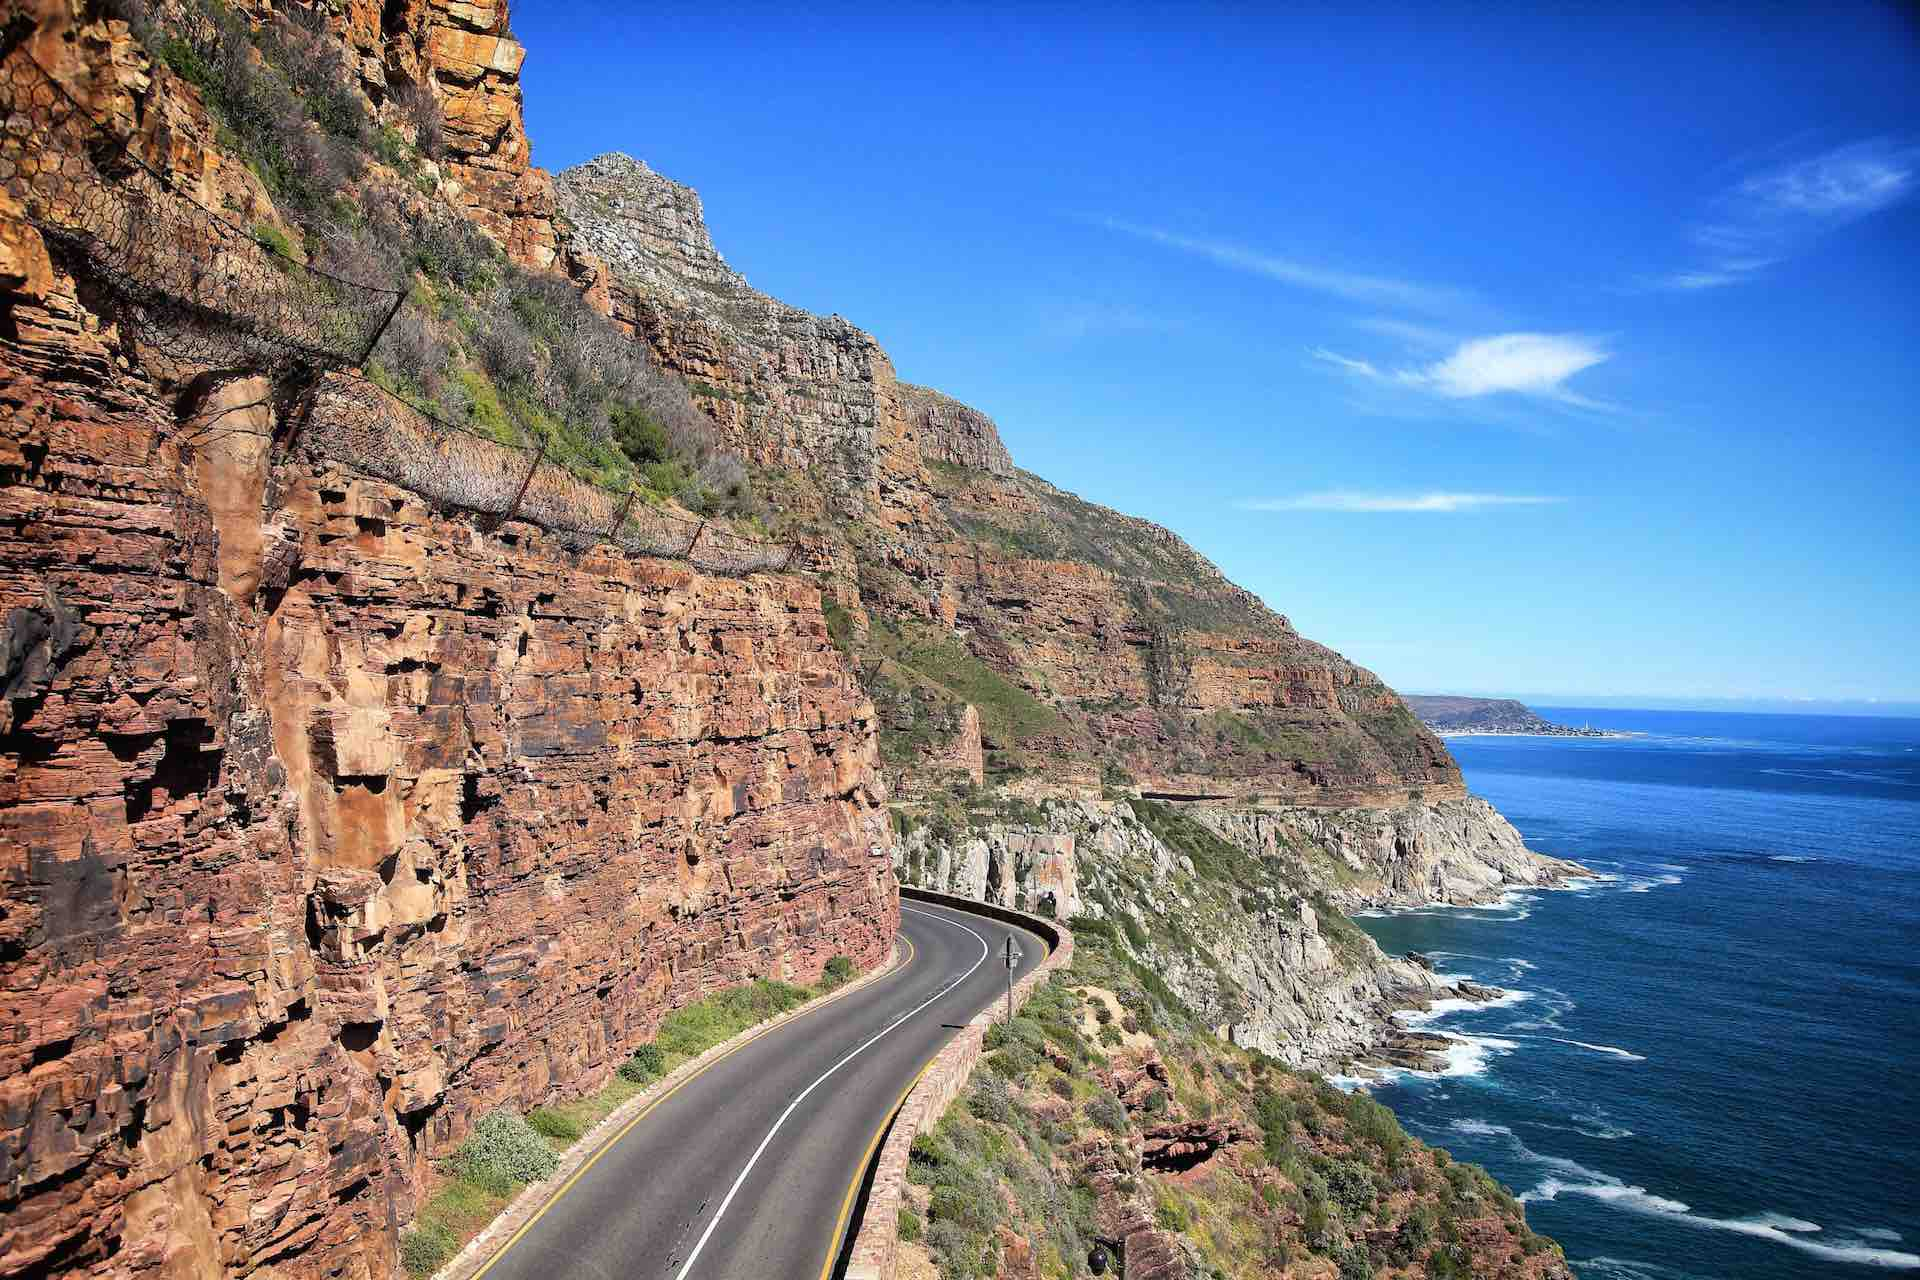 World Travel Blog in South Africa